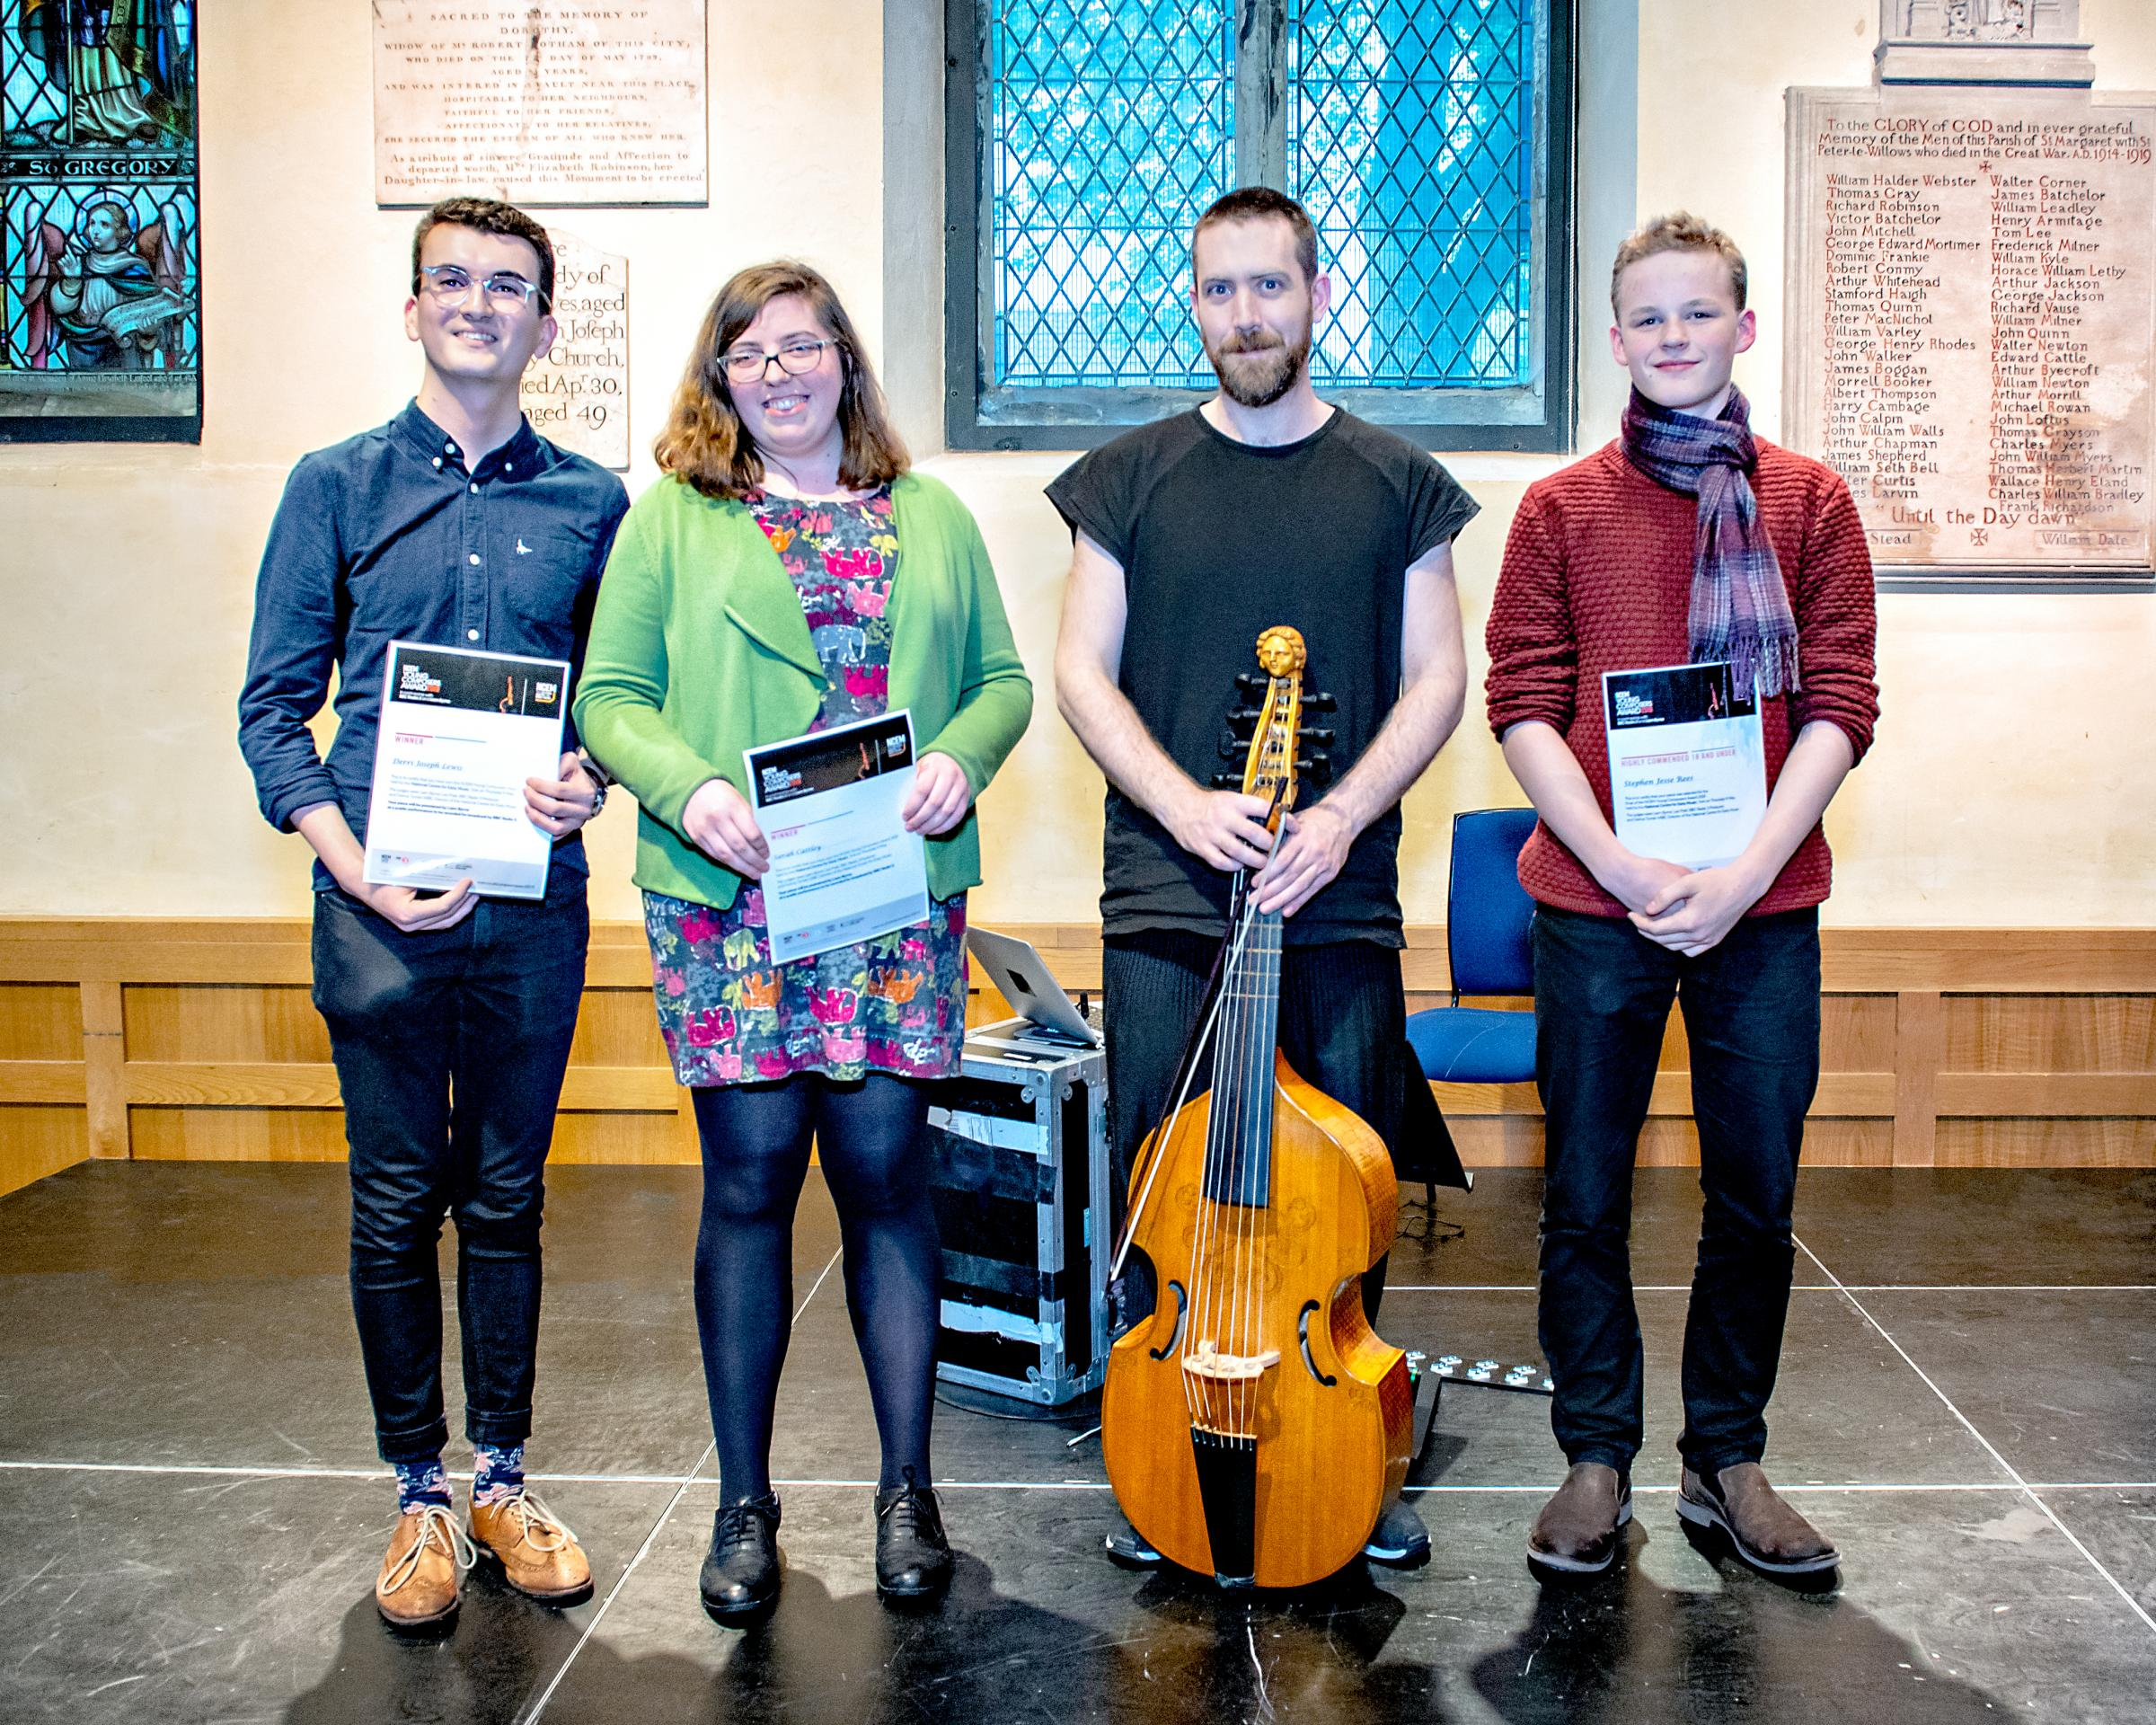 Congratulations: NCEM Young Composers Award winners Derri Joseph Lewis and Sarah Cattley with viol player and the highly commended Stephen Jesse Rees at the National Centre for Early Music, York